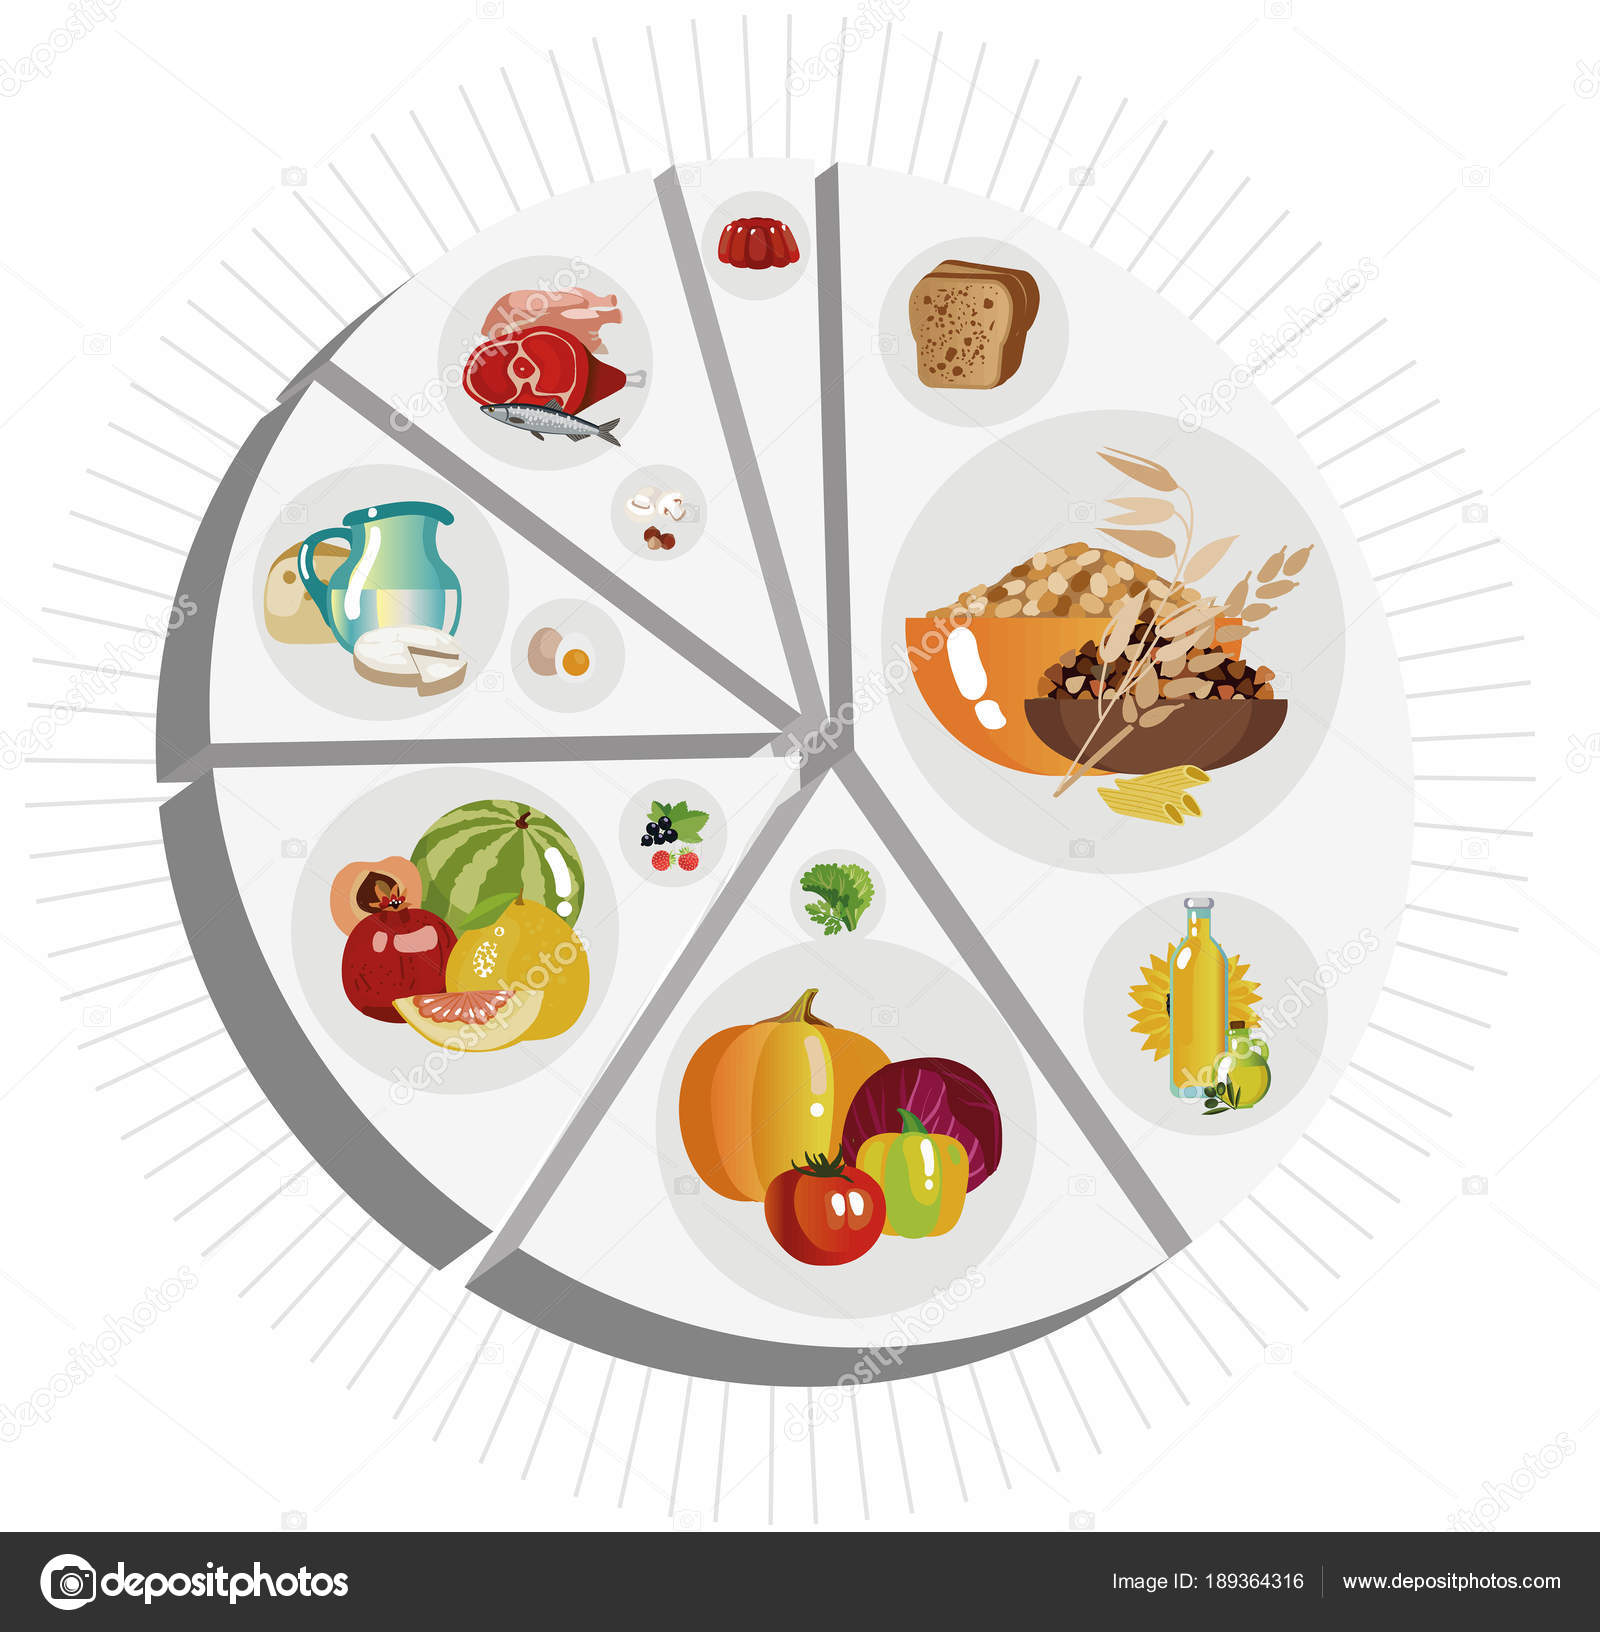 Food pyramid of pie chart stock vector alfaolga 189364316 food pyramid in the form of a pie chart recommendation for a healthy diet norms of products for the daily diet vector by alfaolga nvjuhfo Choice Image